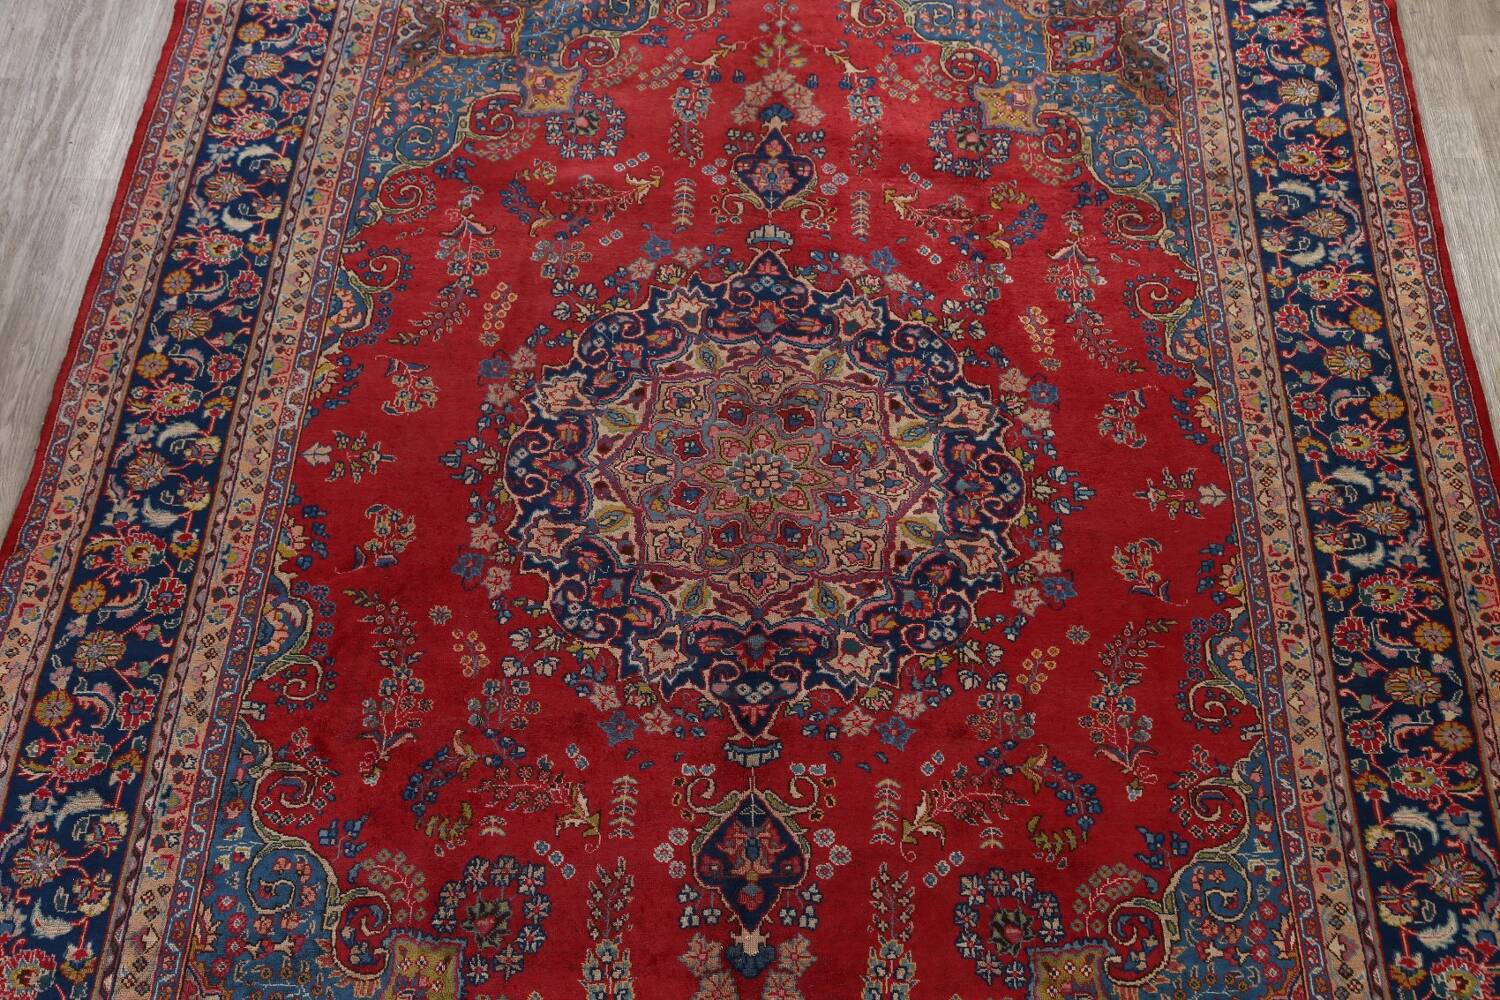 Vintage Floral Red Mashad Persian Area Rug 9x13 image 3